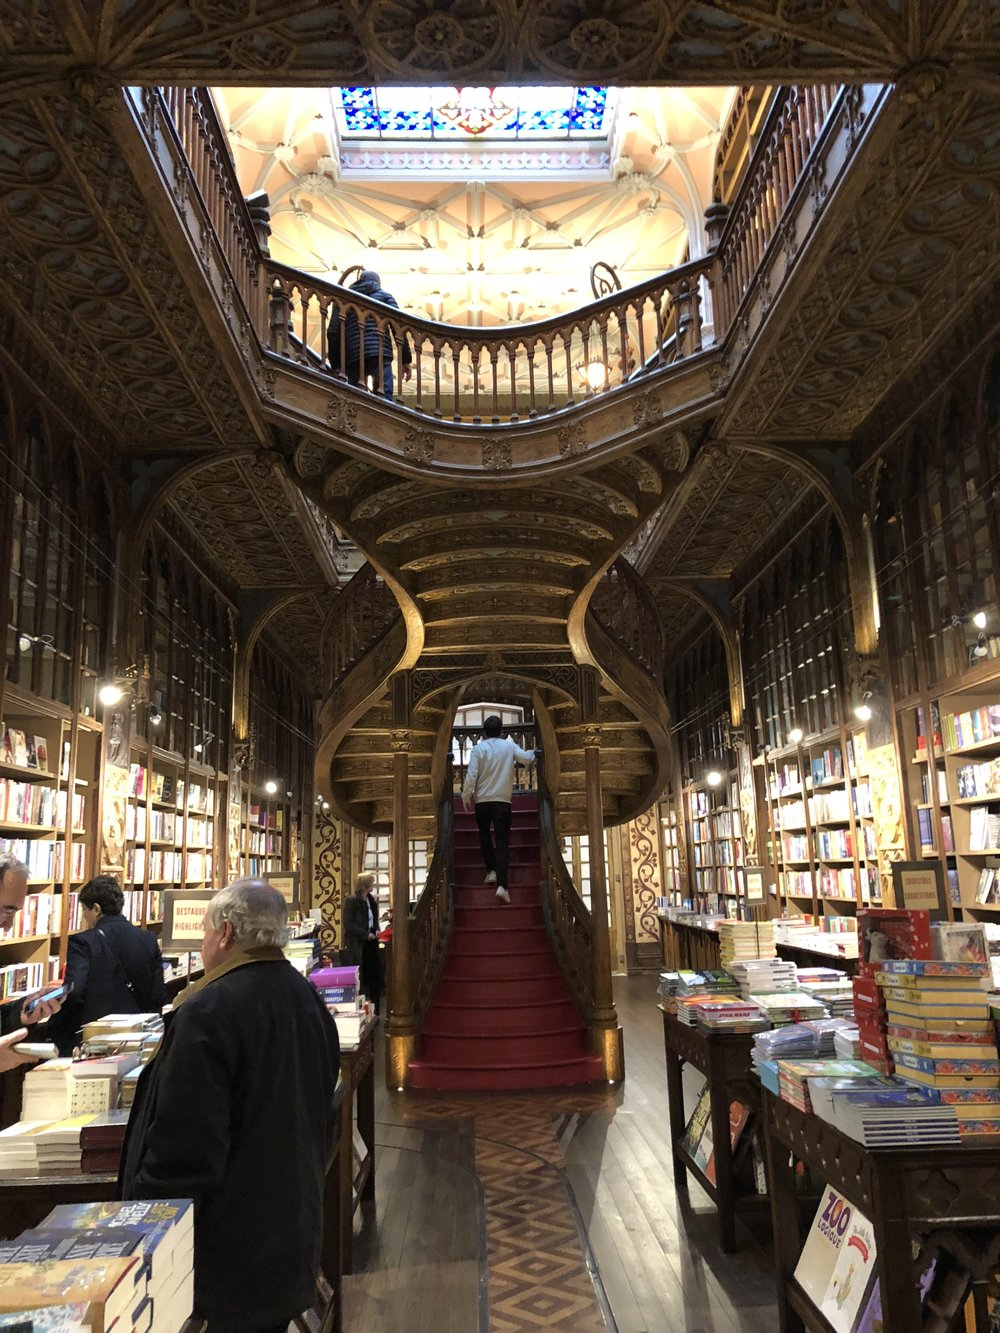 Walking into Lello Livraria.